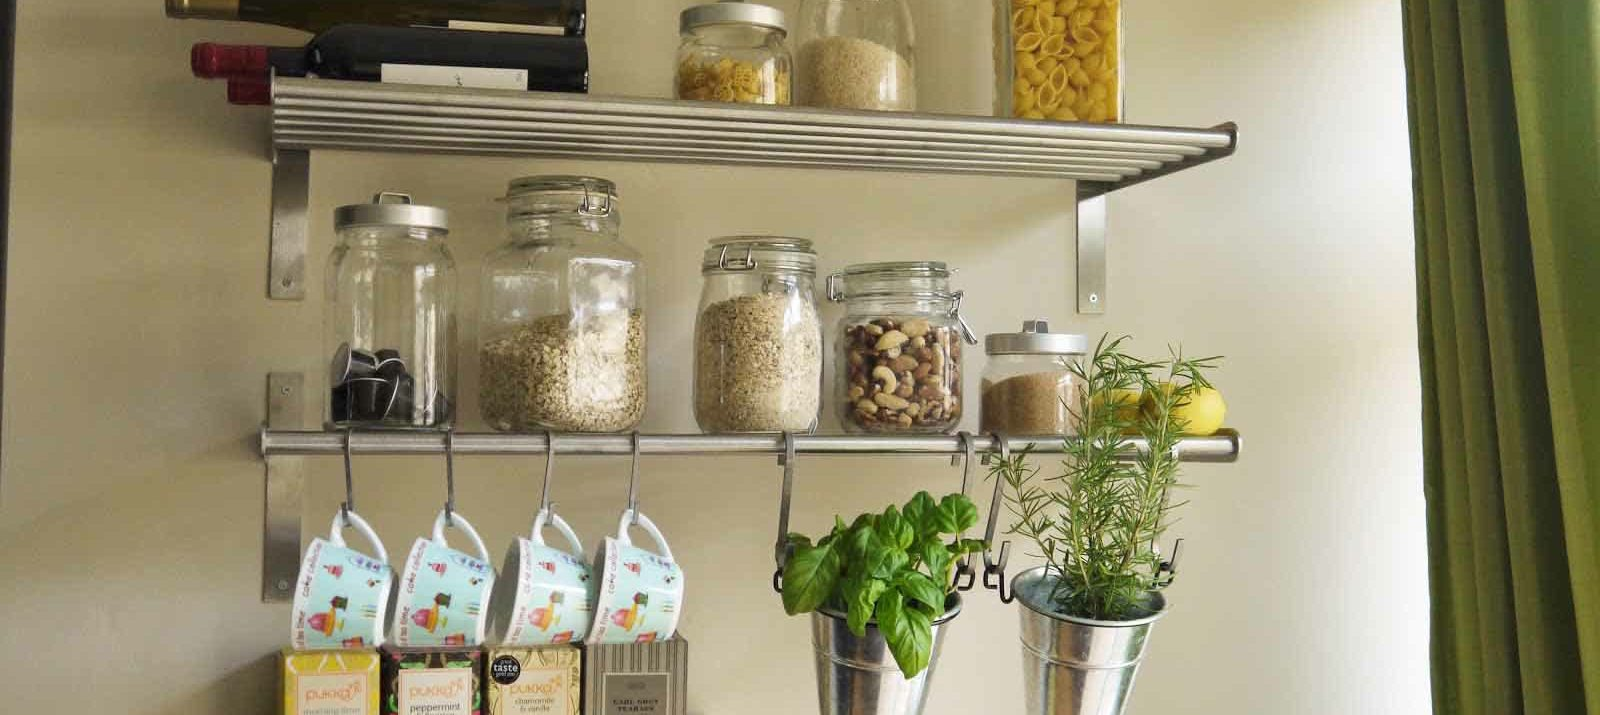 56 Useful Kitchen Storage Ideas: 11 Clever And Easy Kitchen Organization Ideas You'll Love